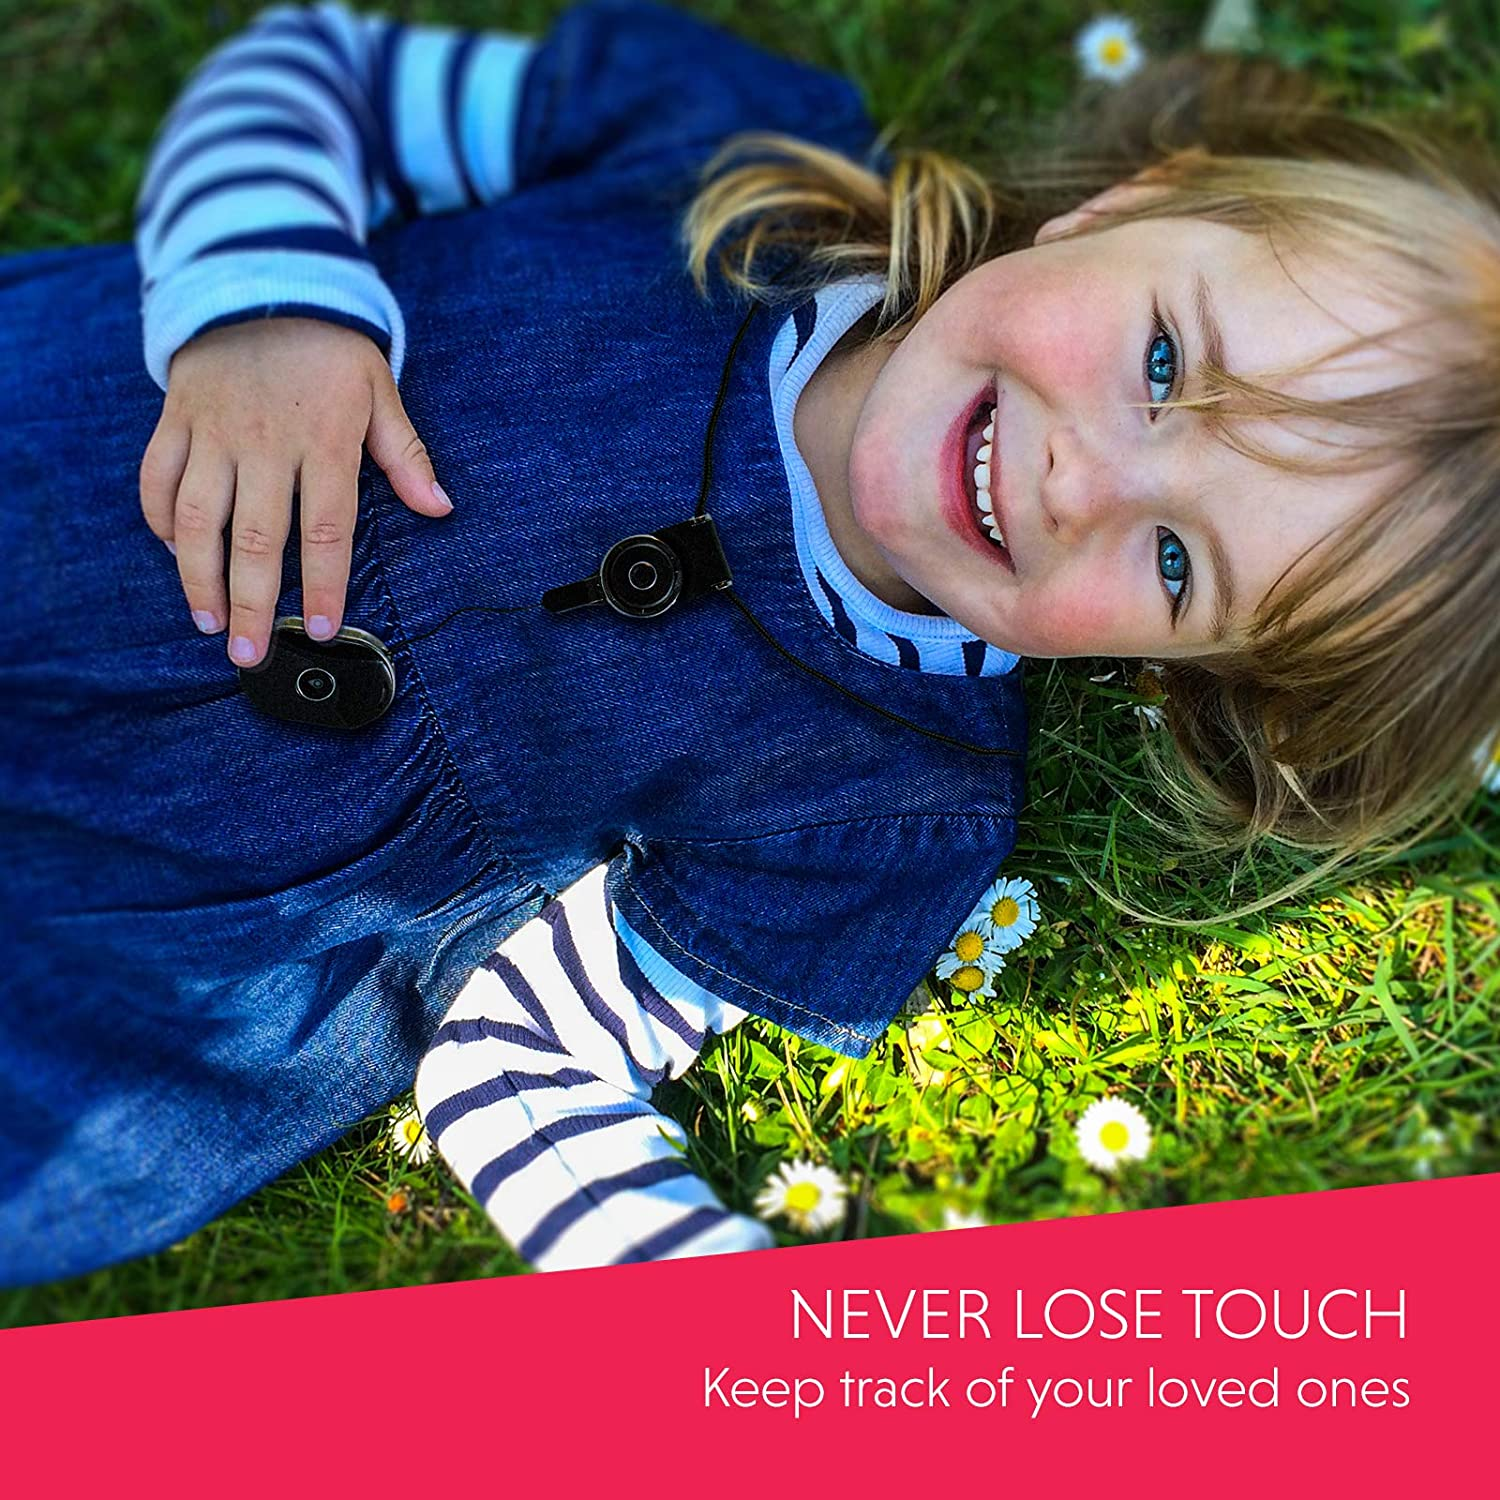 UBEE JUNIOR Unlimited Range SOS alerts and Free Shareable App GPS Tracker for Toddlers